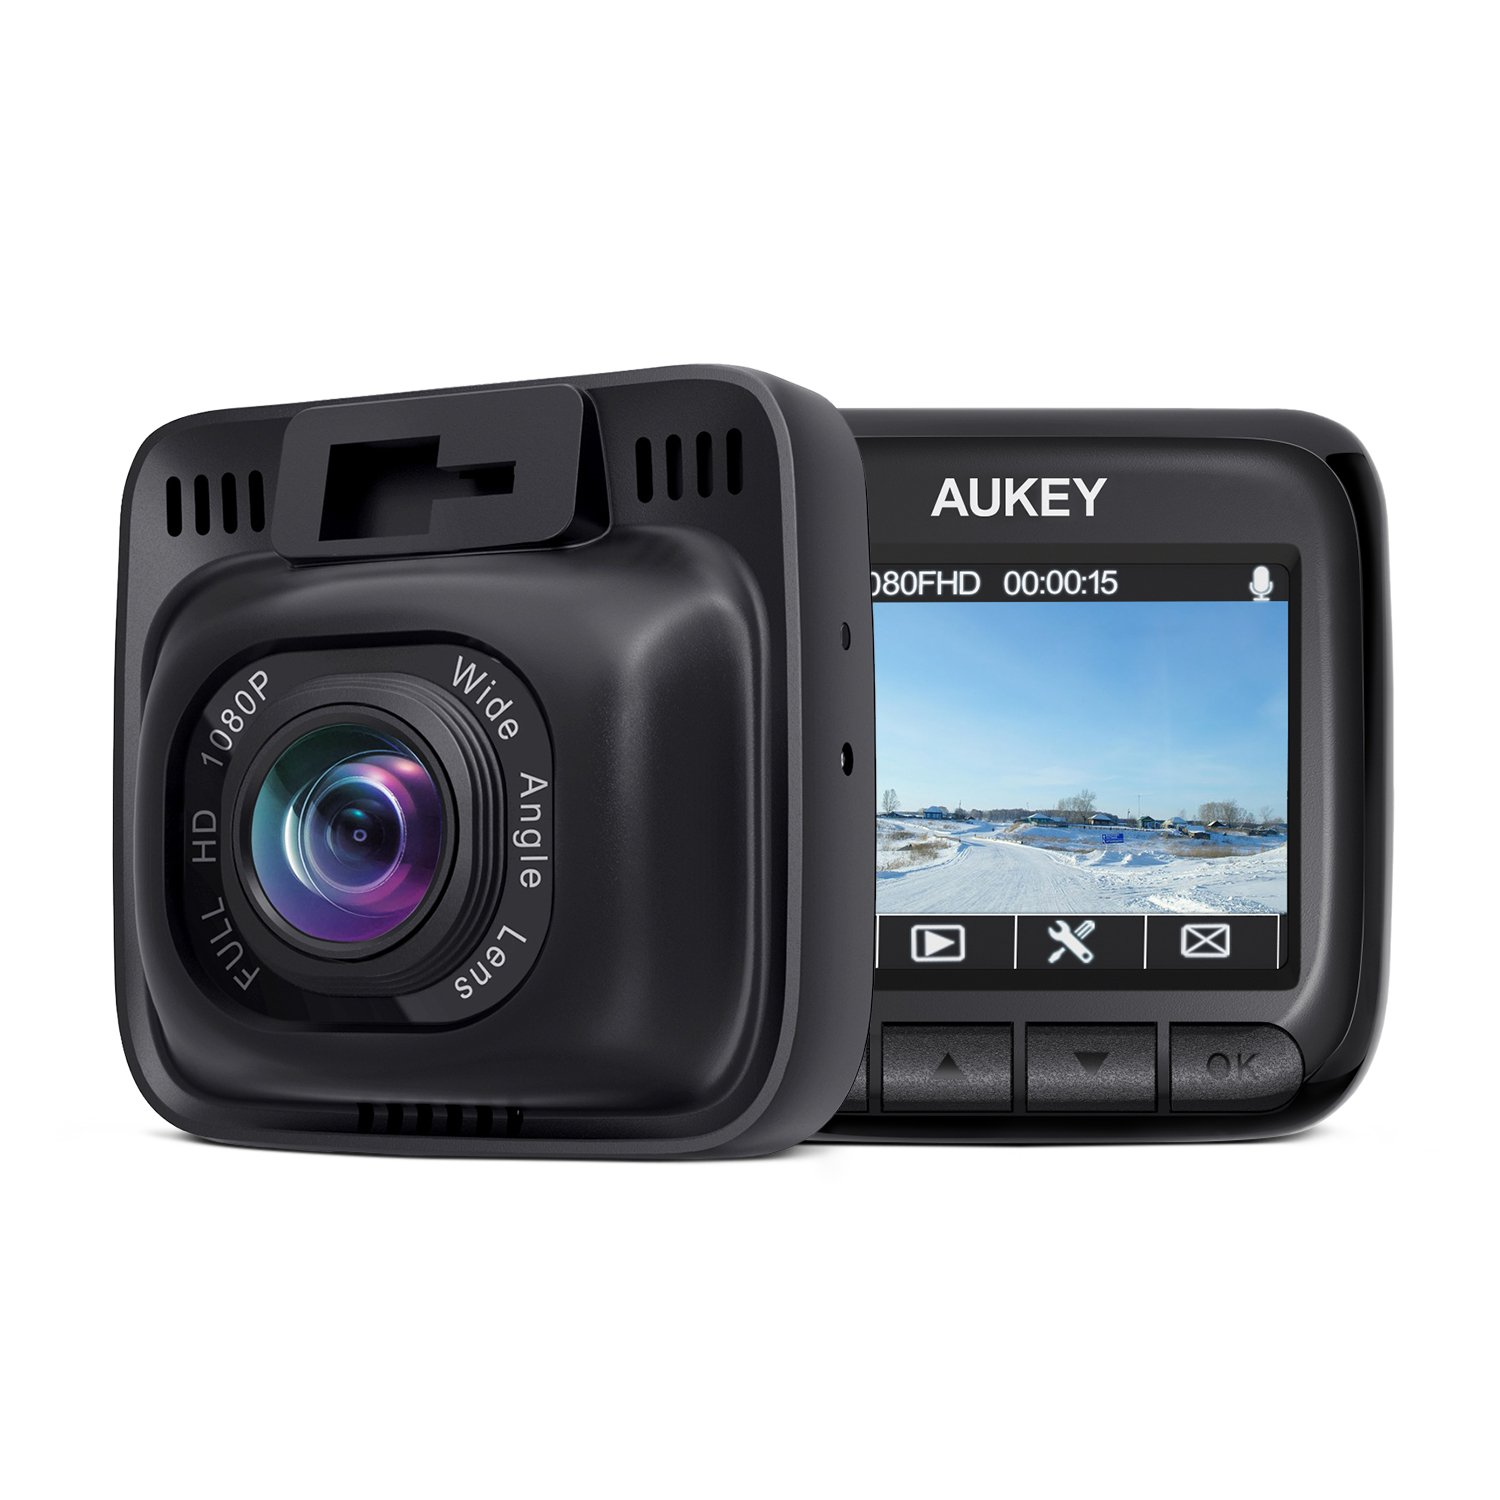 AUKEY Dash Cam, Dashboard Camera Recorder with Full HD 1080P, 6-Lane 170° Wide Angle Lens, 2'' LCD and Night Vision by AUKEY